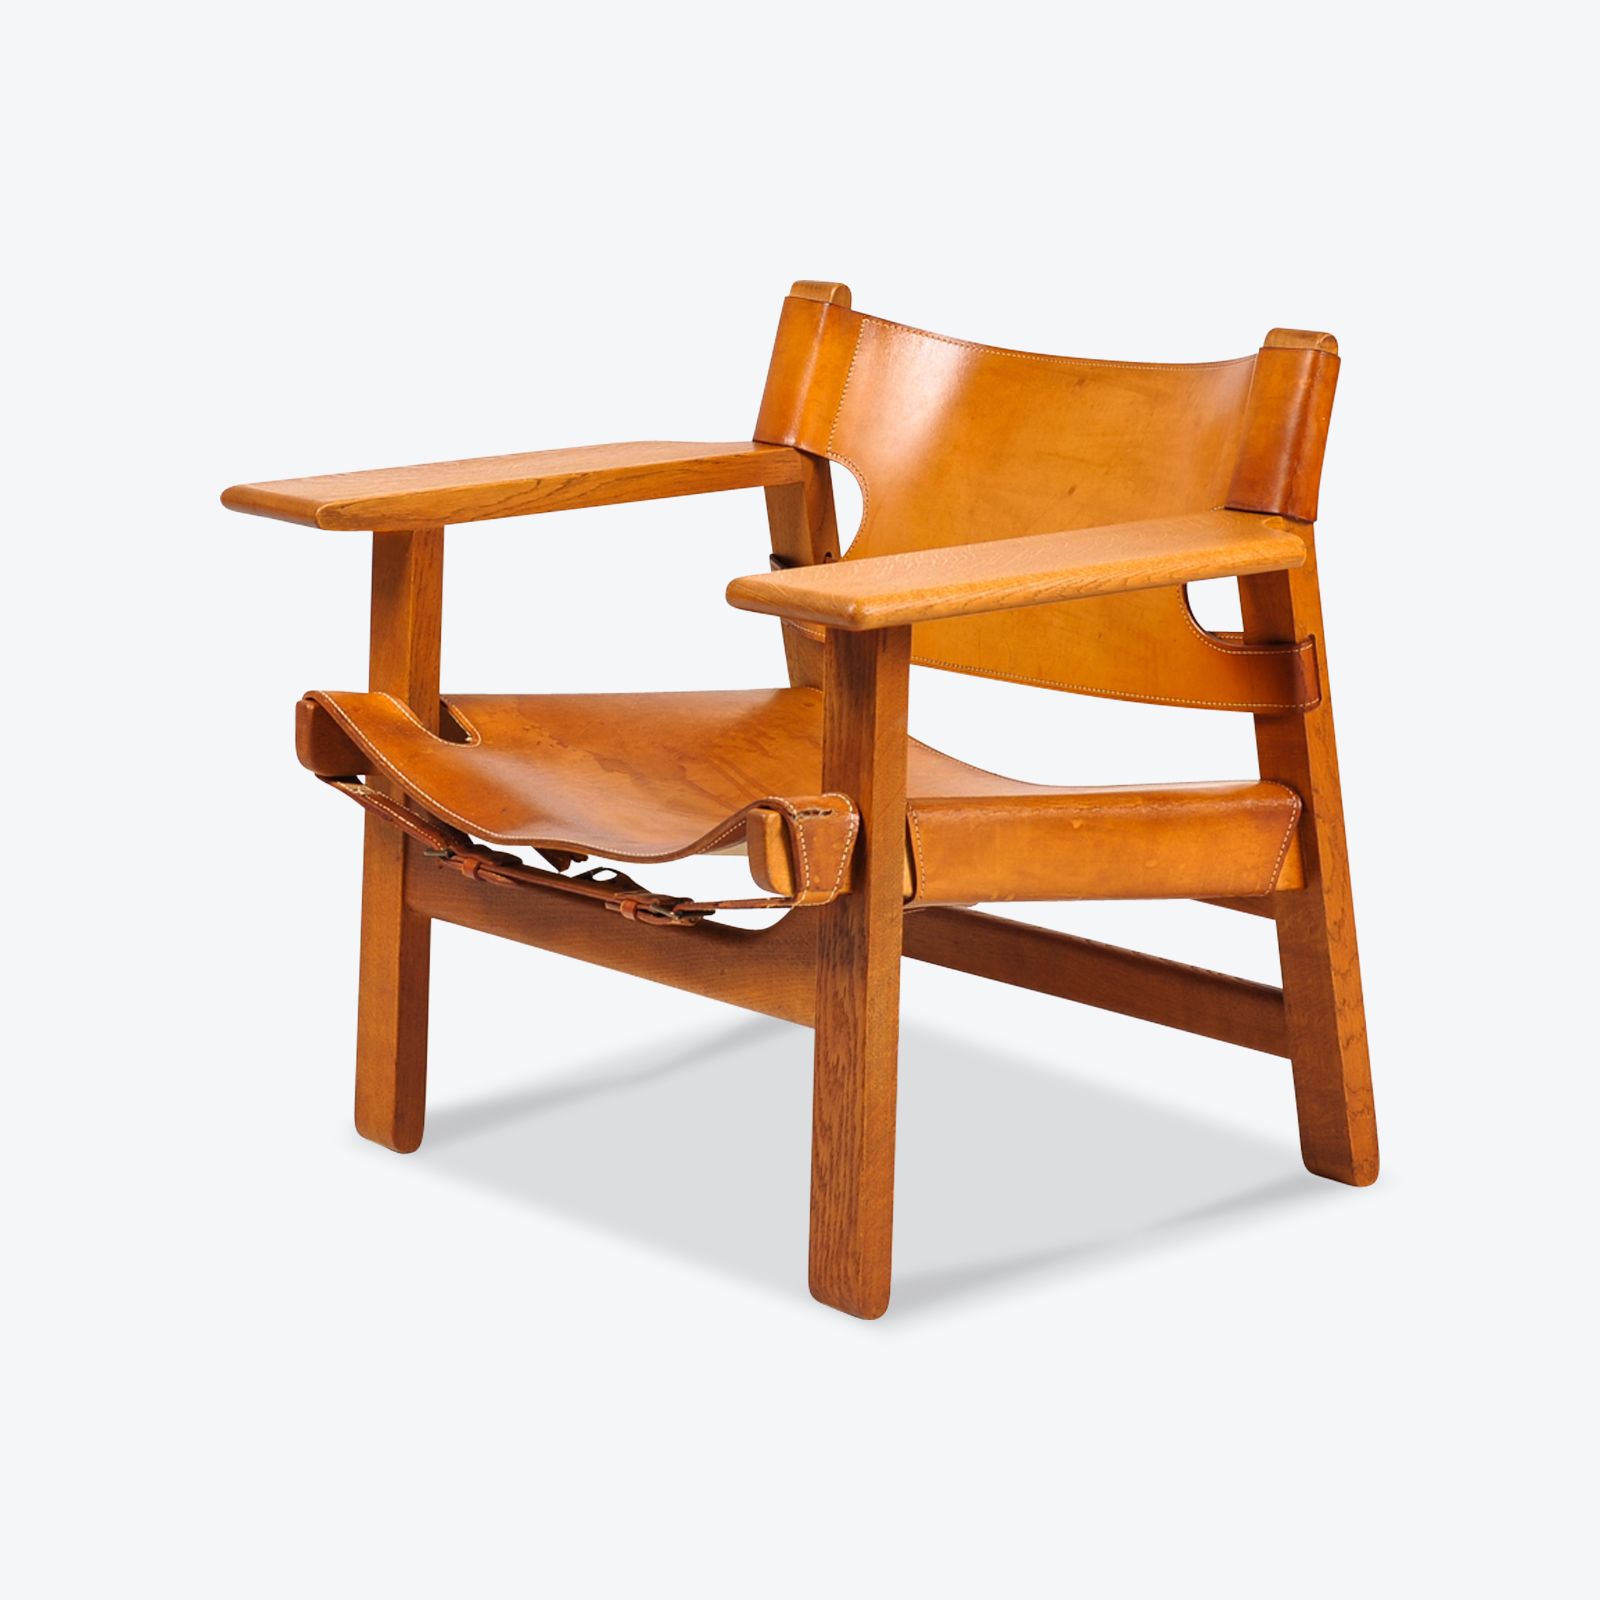 spanish chair by borge mogensen for fredericia in tan leather 1950s